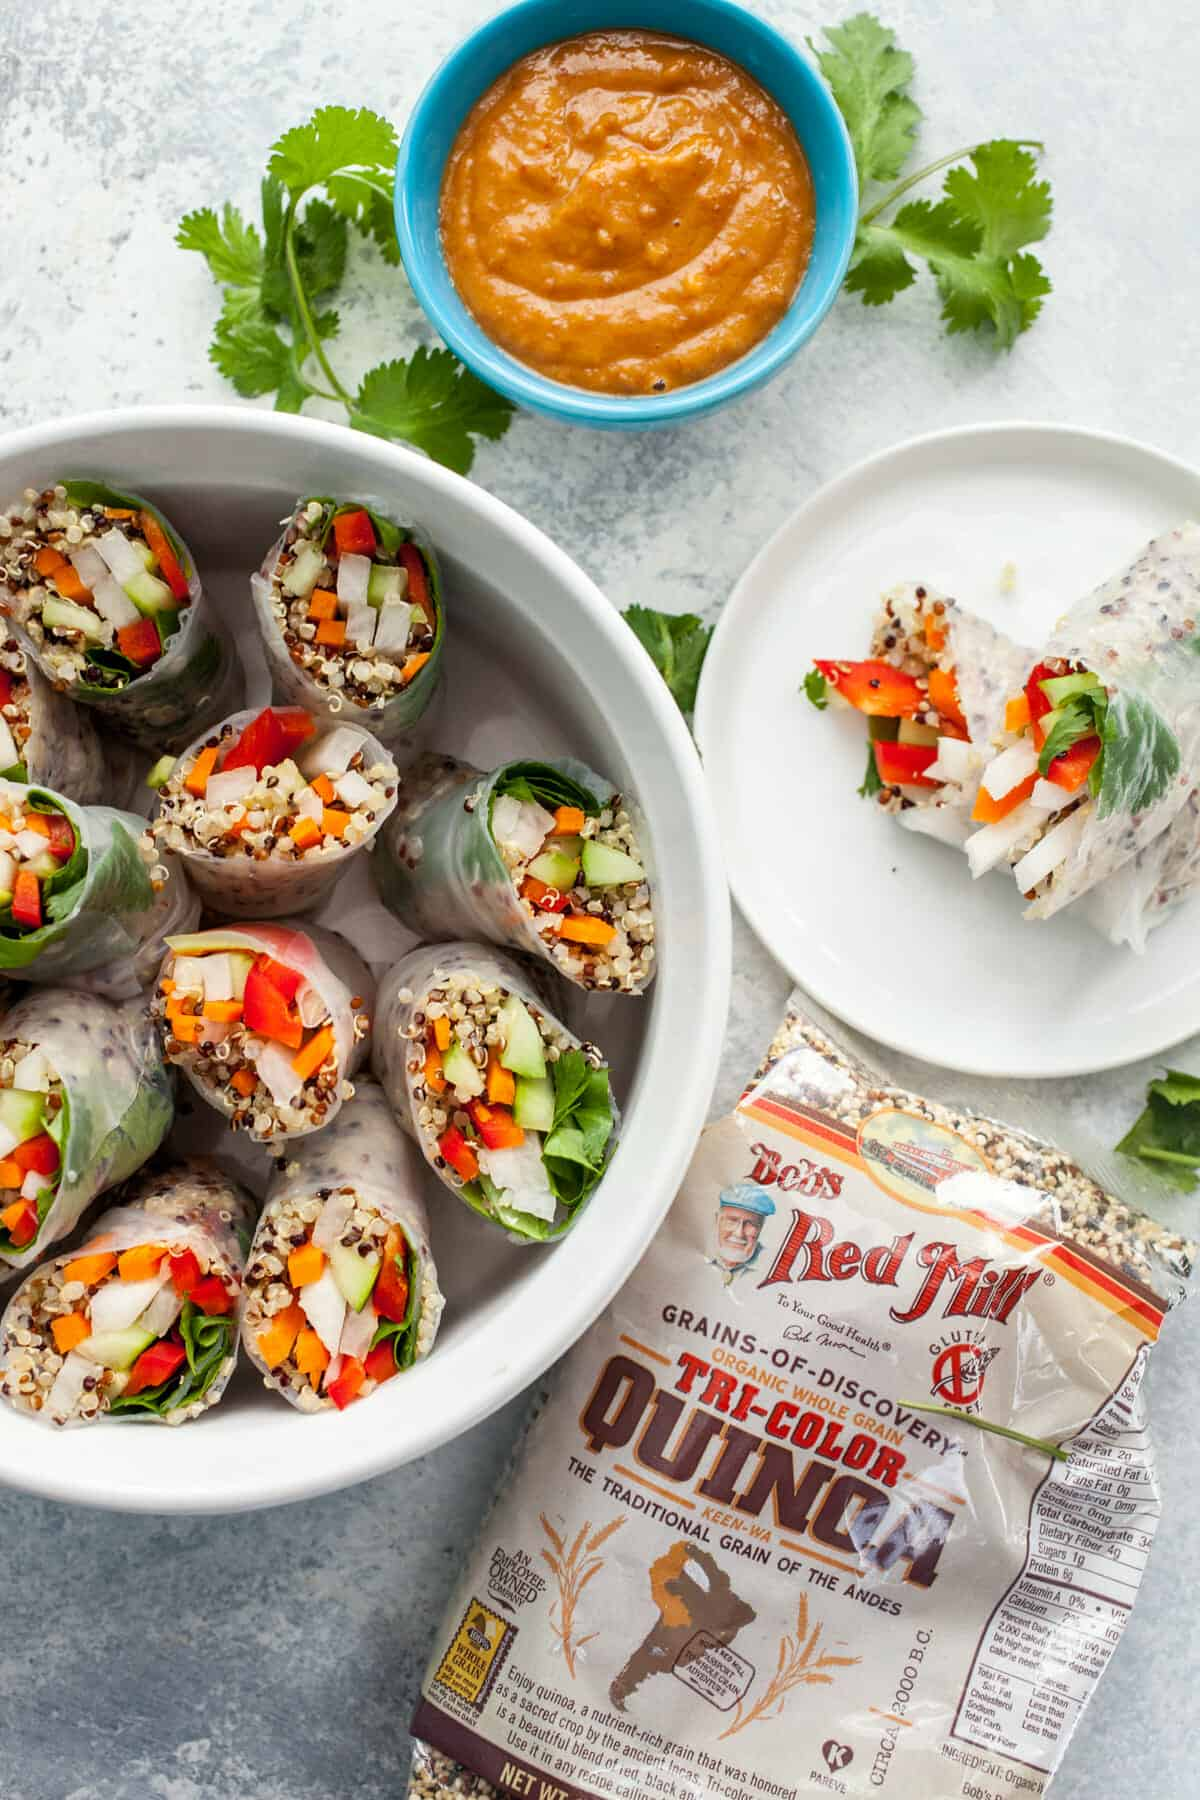 Quinoa Spring Rolls: These bright and crunchy spring rolls are filled with Tri-Color quinoa. I like to serve them with a simple spicy peanut sauce. Great for a healthy party app or you can snag a few of them and make a meal! | macheesmo.com